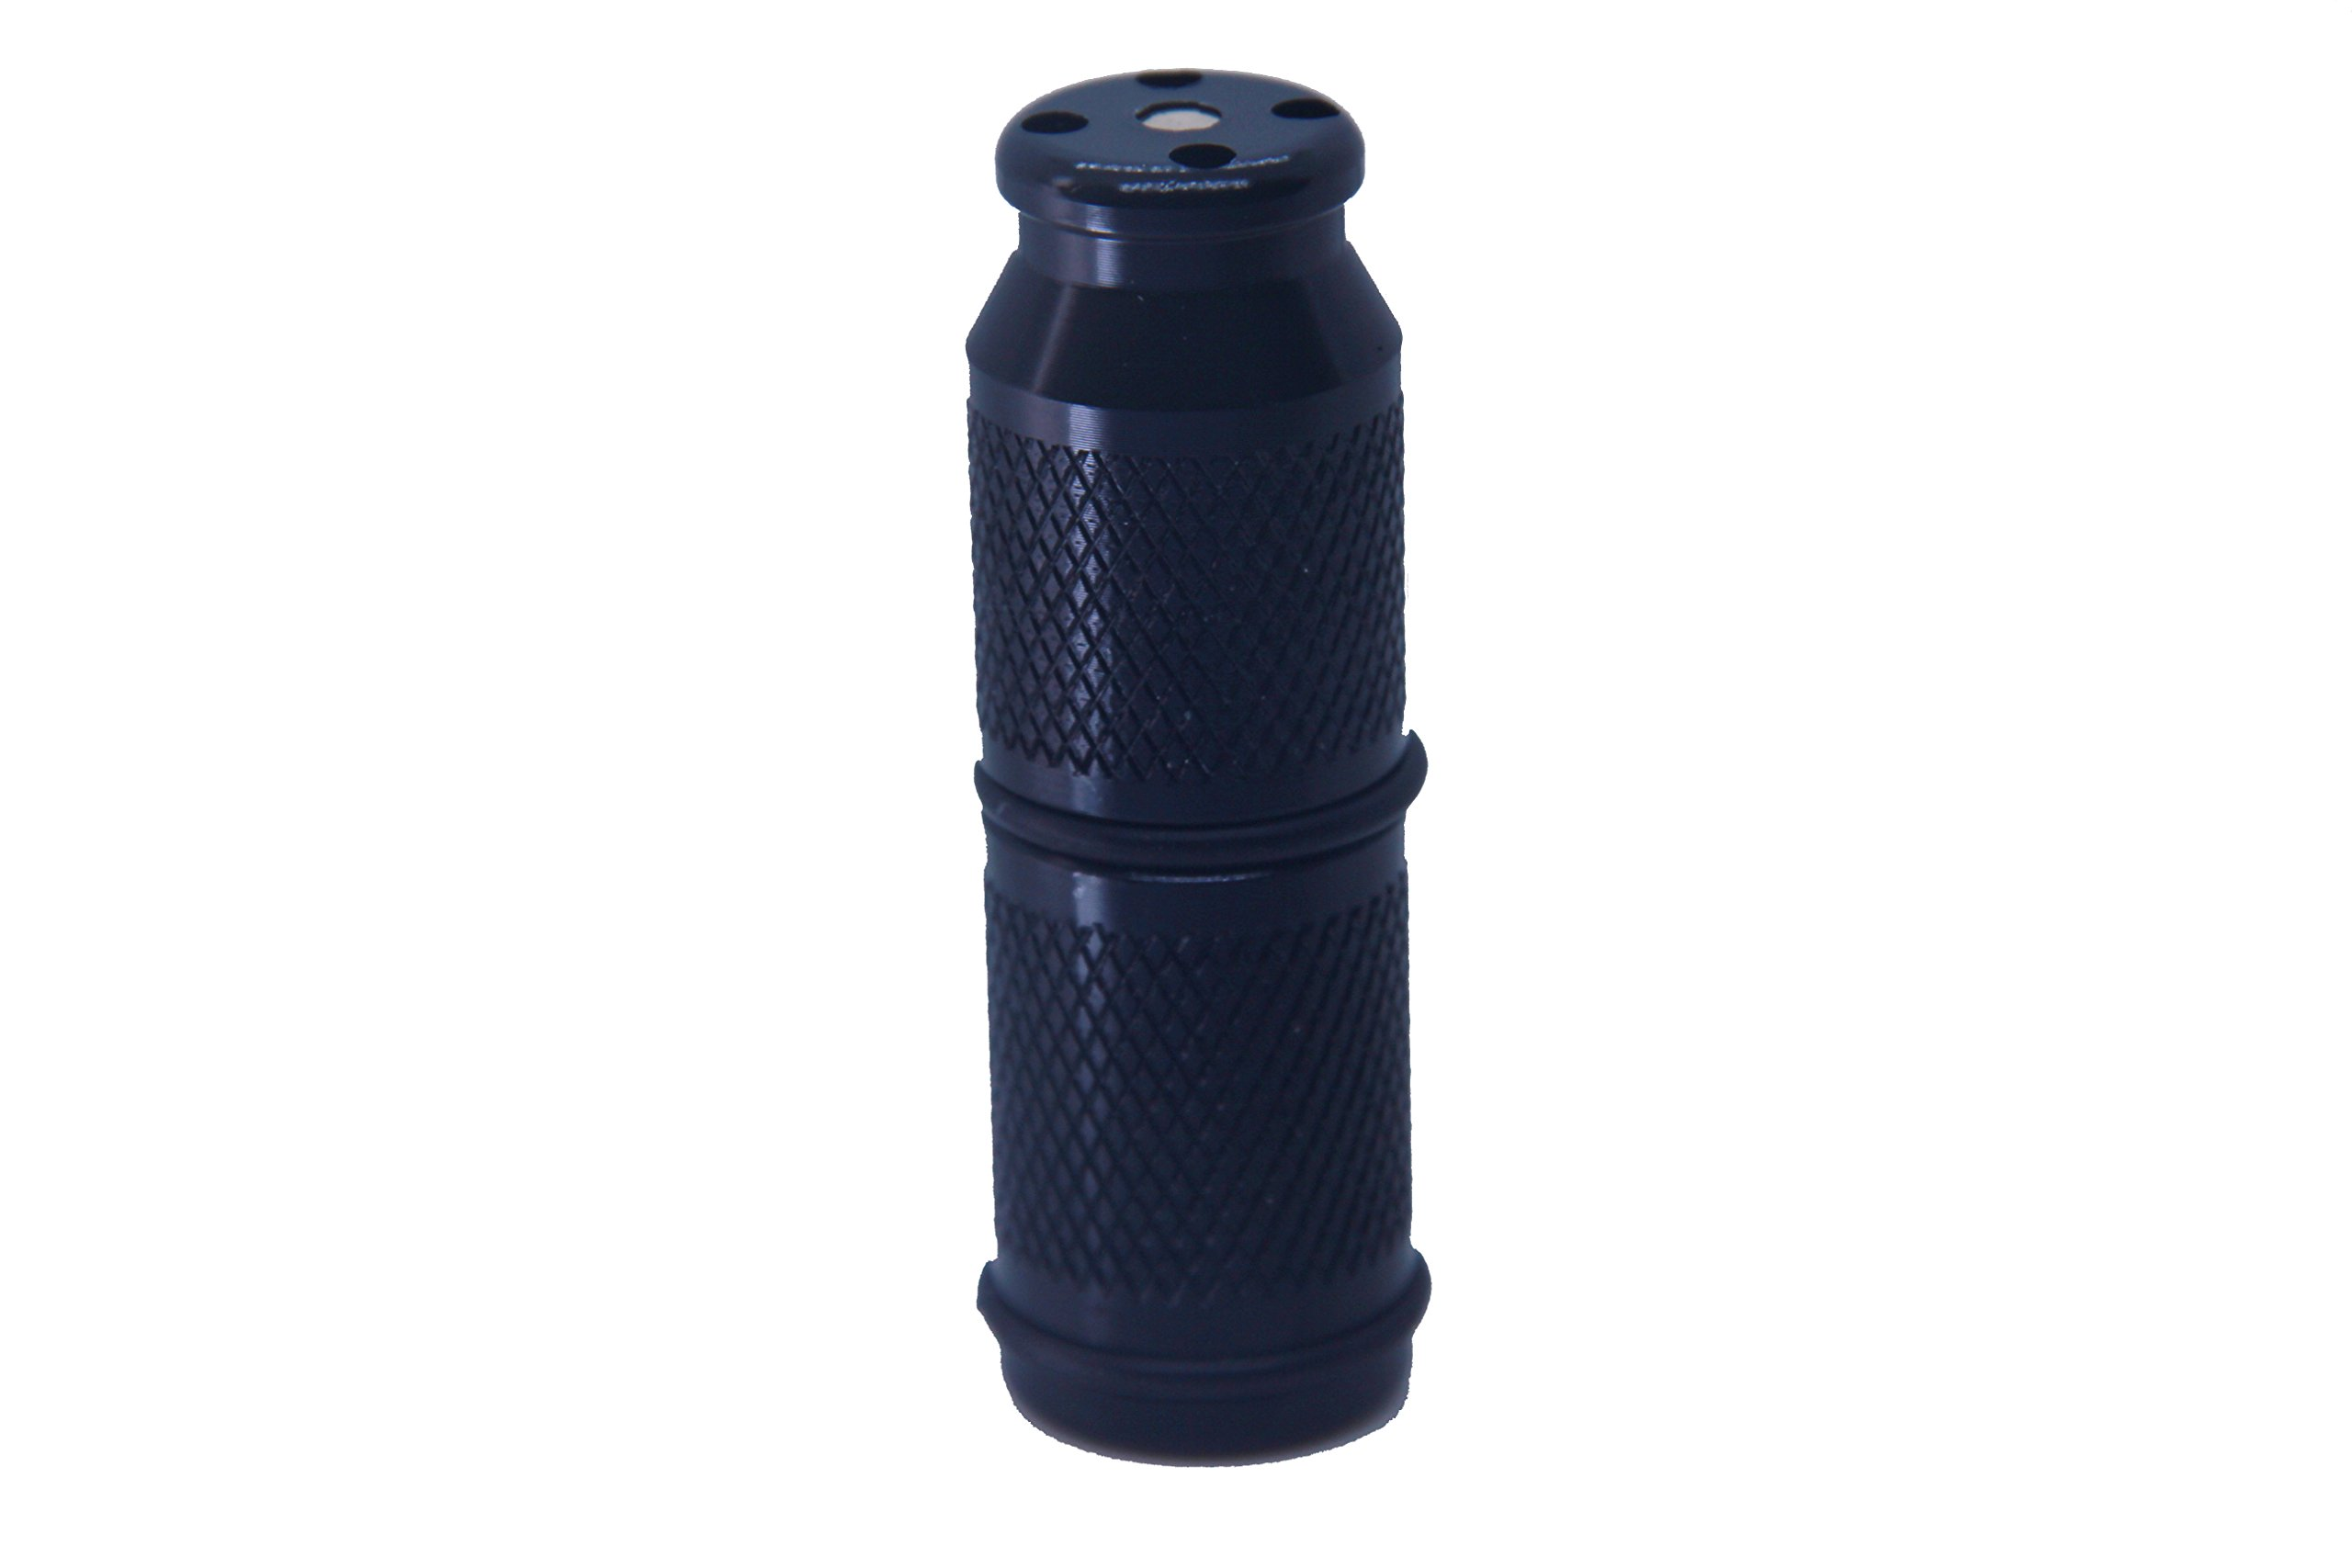 Whipped Cream Canister (Black)